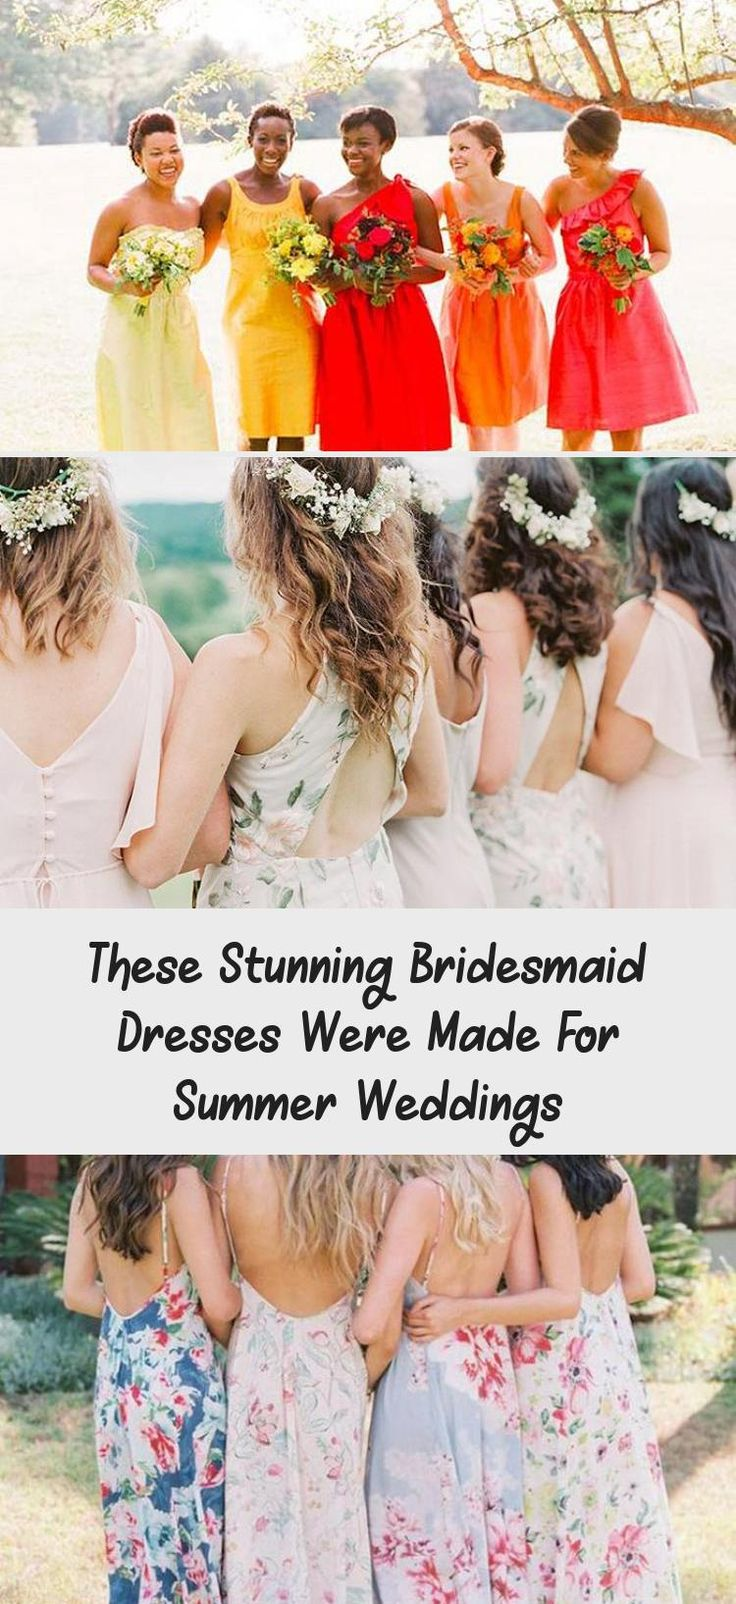 The Most Stunning Summer Bridesmaid Dresses Of 2018 #BridesmaidDressesLace #LavenderBridesmaidDresses #CheapBridesmaidDresses #BridesmaidDressesCoral #BridesmaidDressesBeach